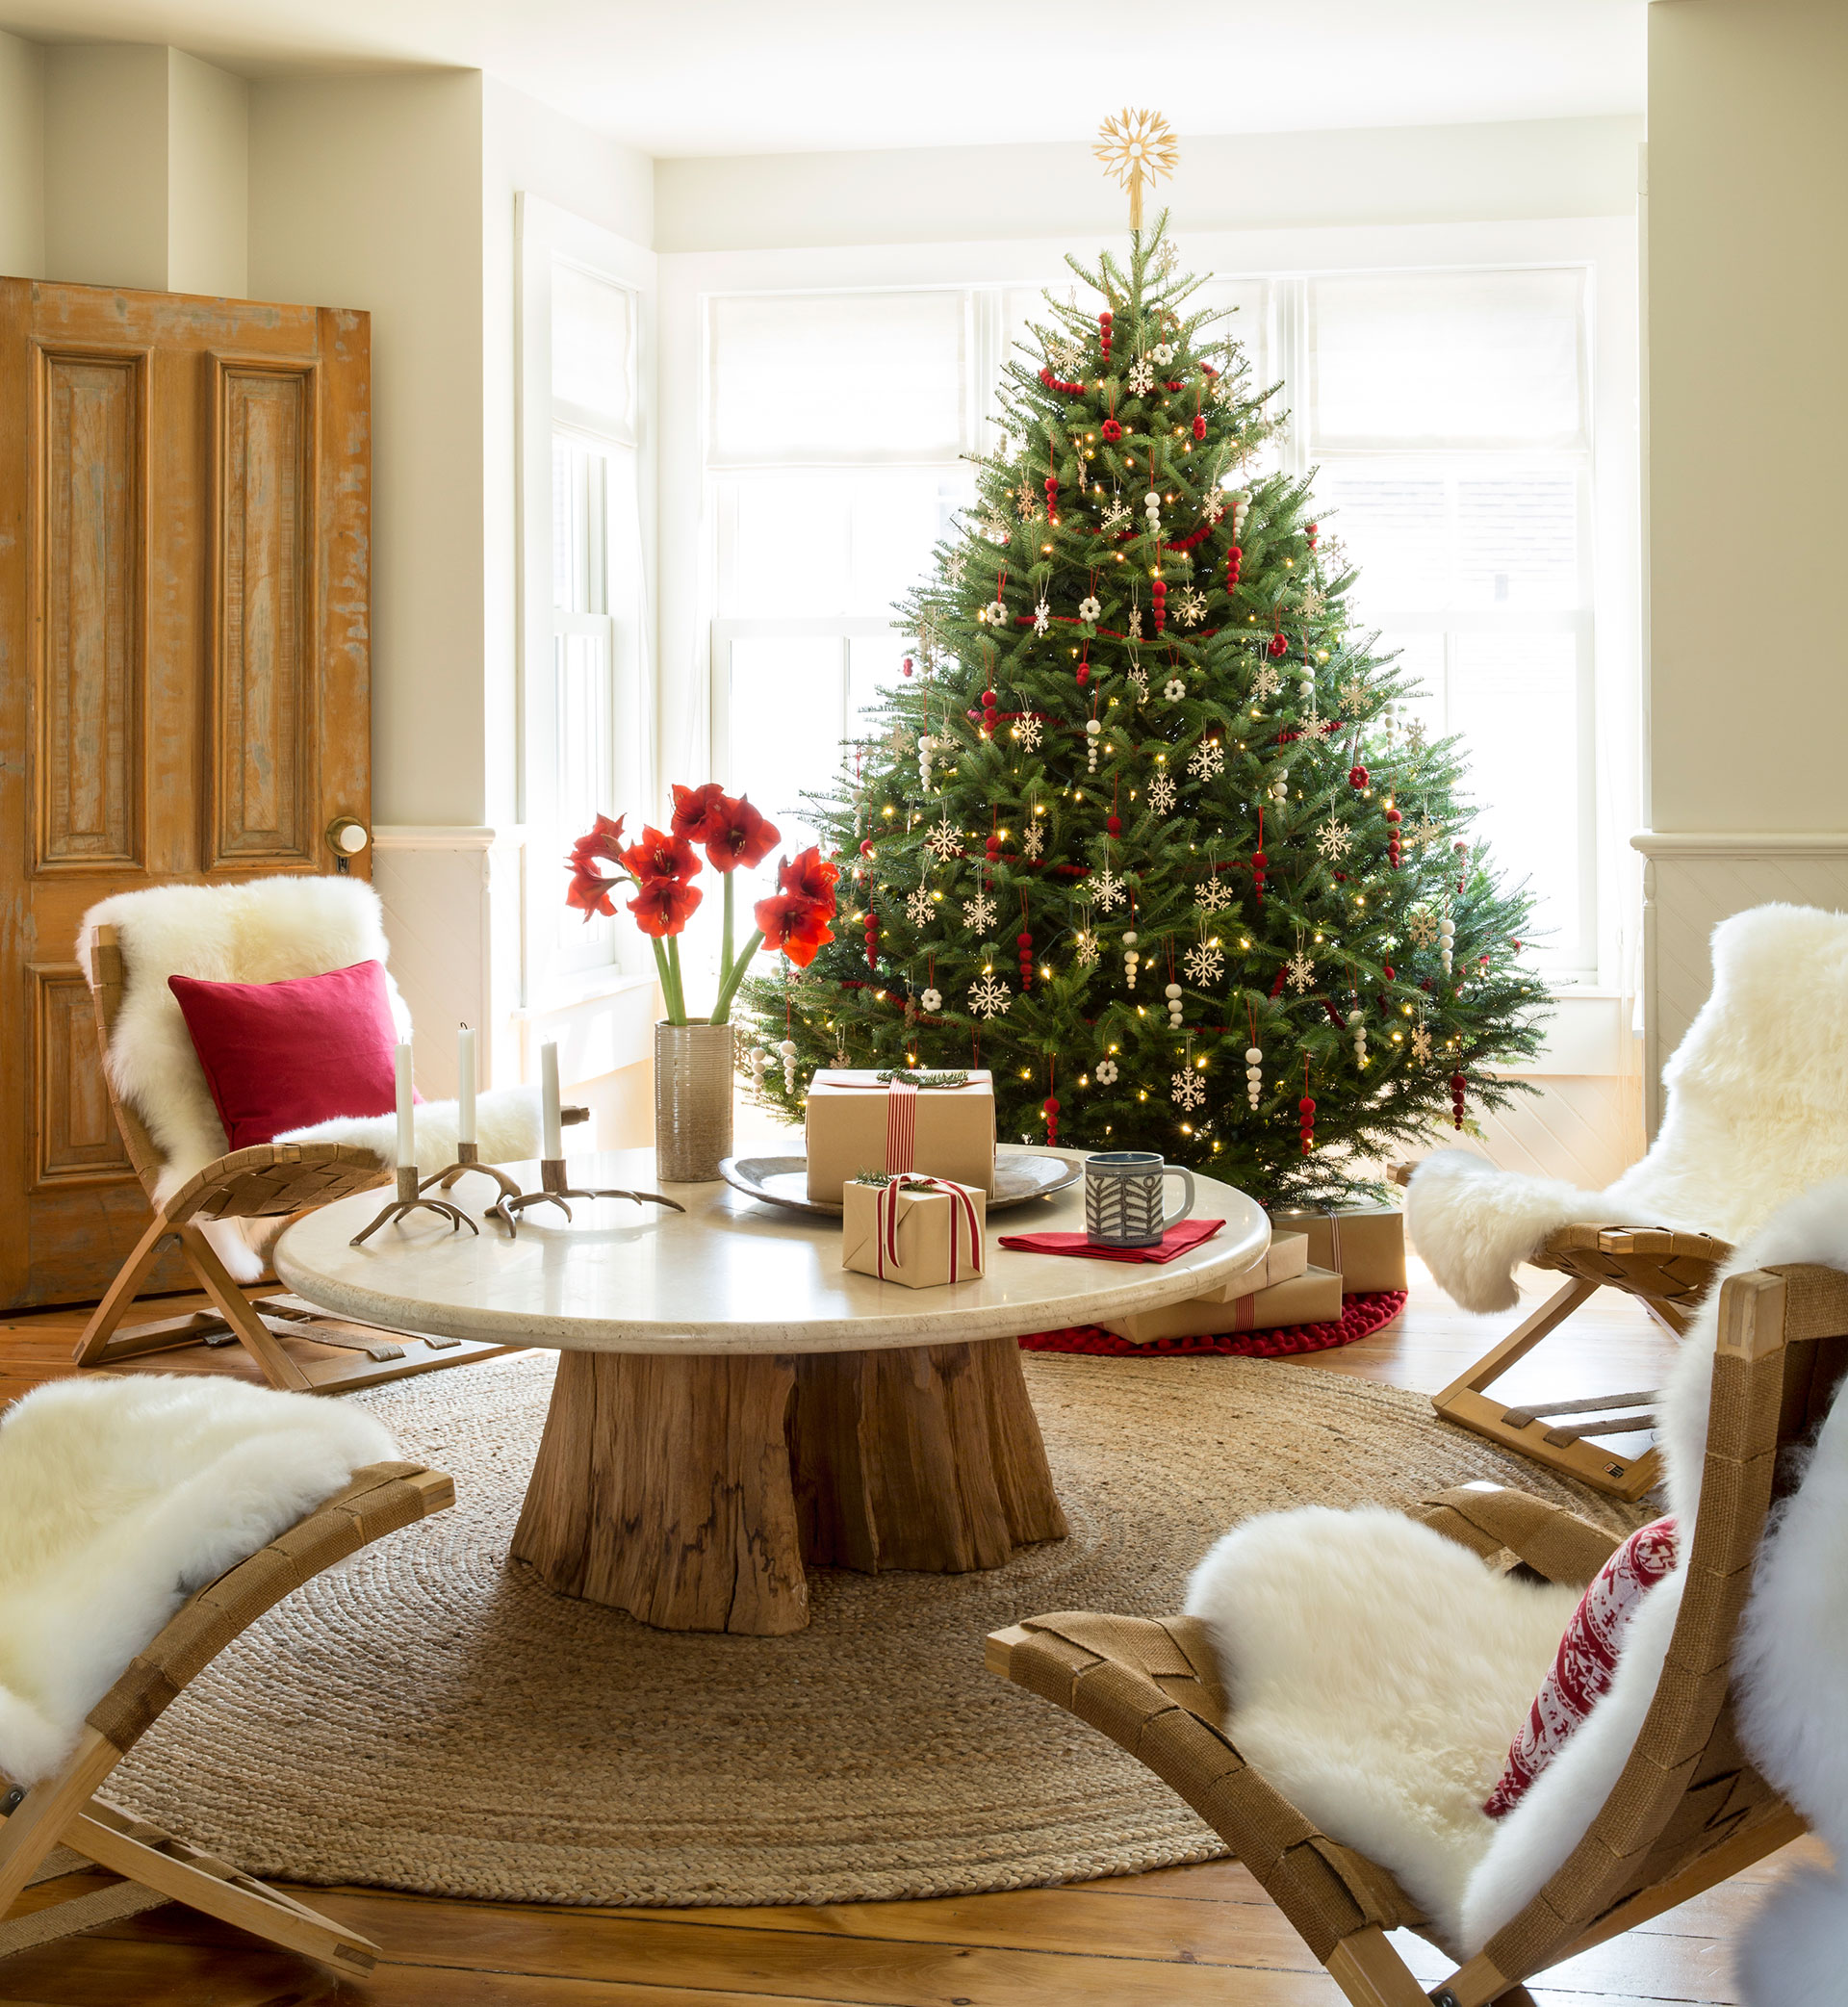 Home Design Ideas For Christmas: Mark And Jenny Bretheim Renovated Wisconsin Home